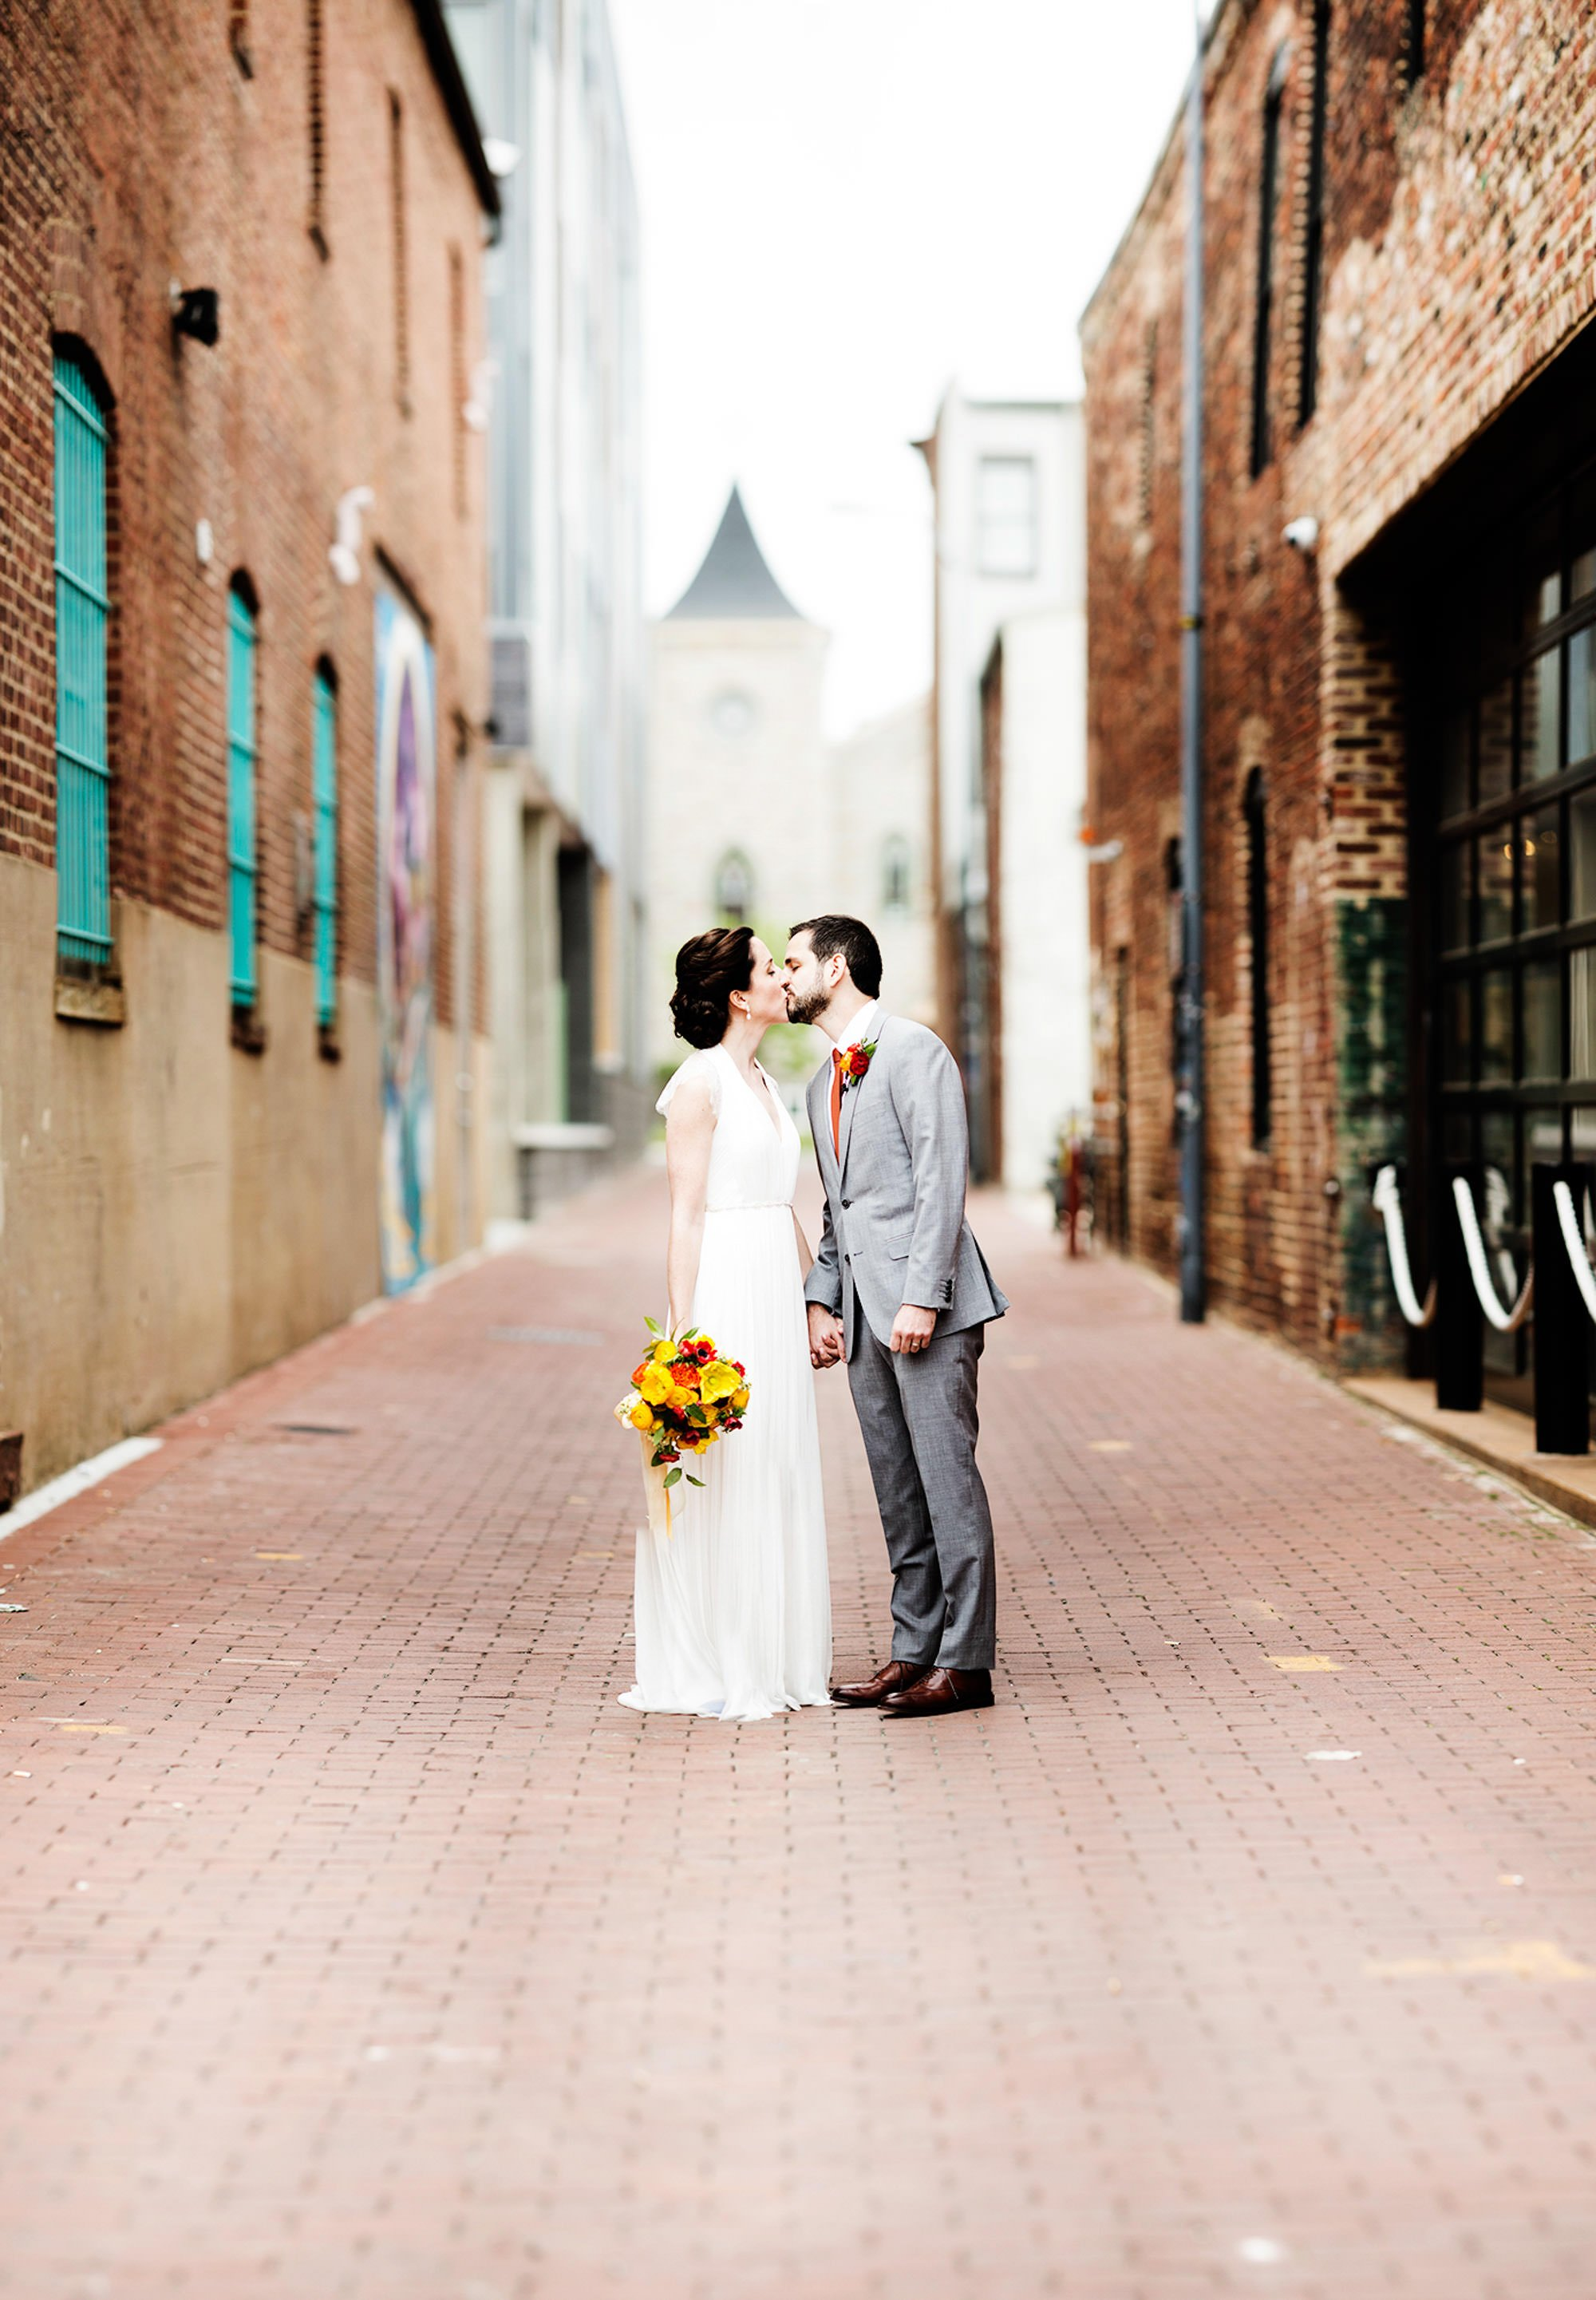 A Bride and Groom Portrait in an alley in Washington, DC